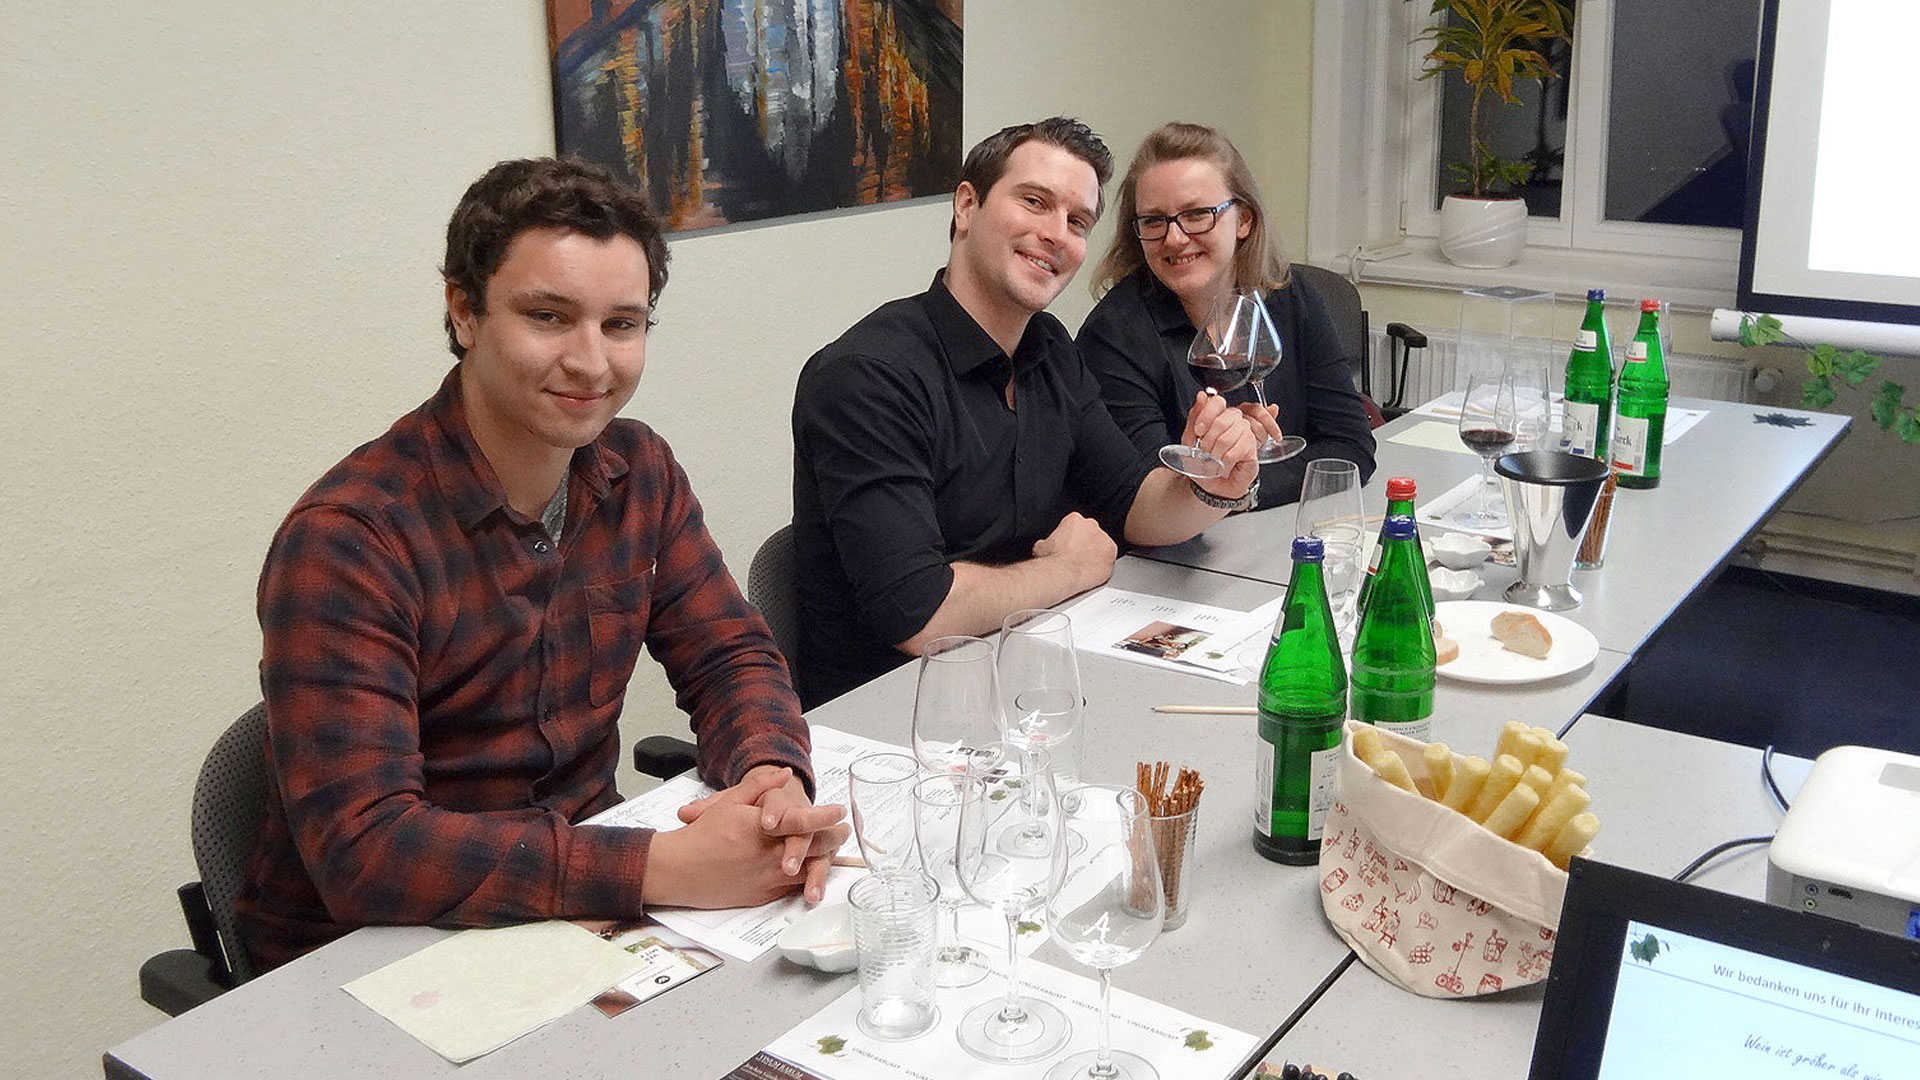 Vinum Rarum | Weinseminar am 08.02.20